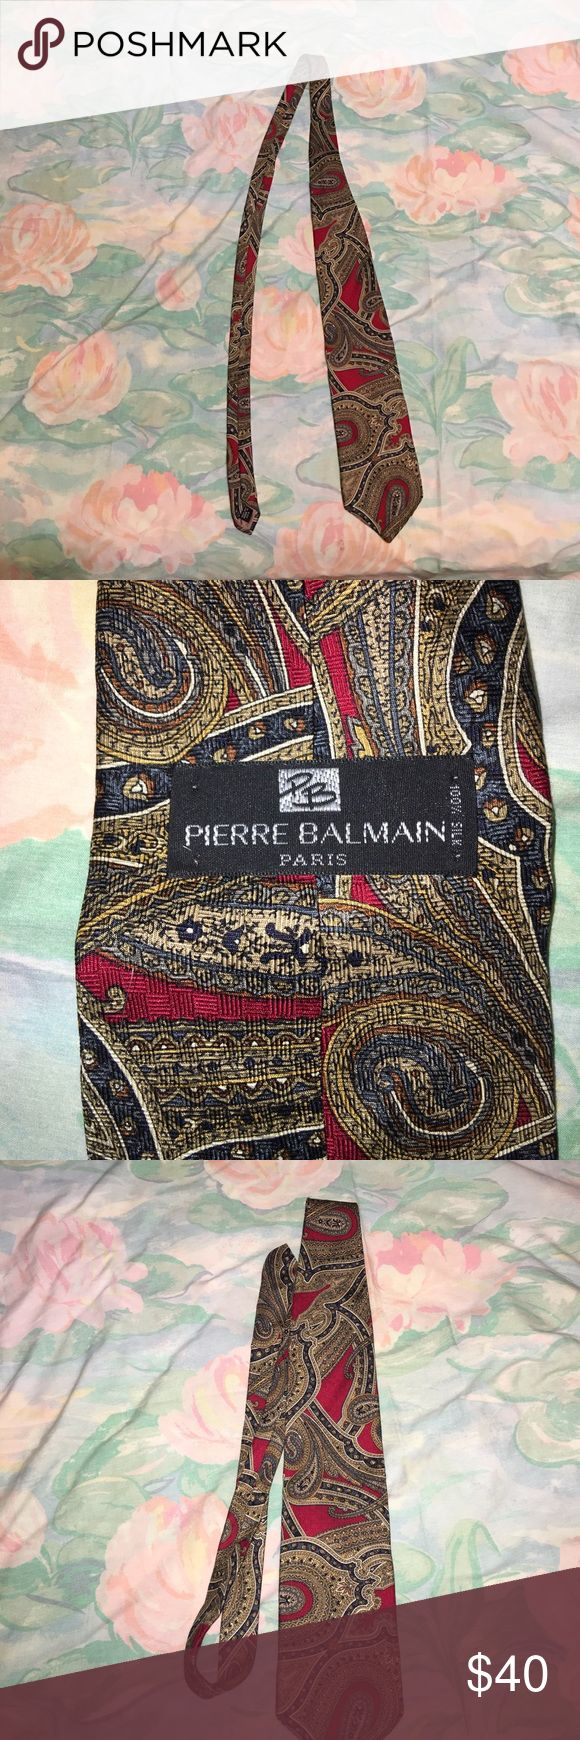 Pierre Balmain Tie Condition:8.7/10. Contact me for more information or pictures! Pierre Balmain Accessories Ties